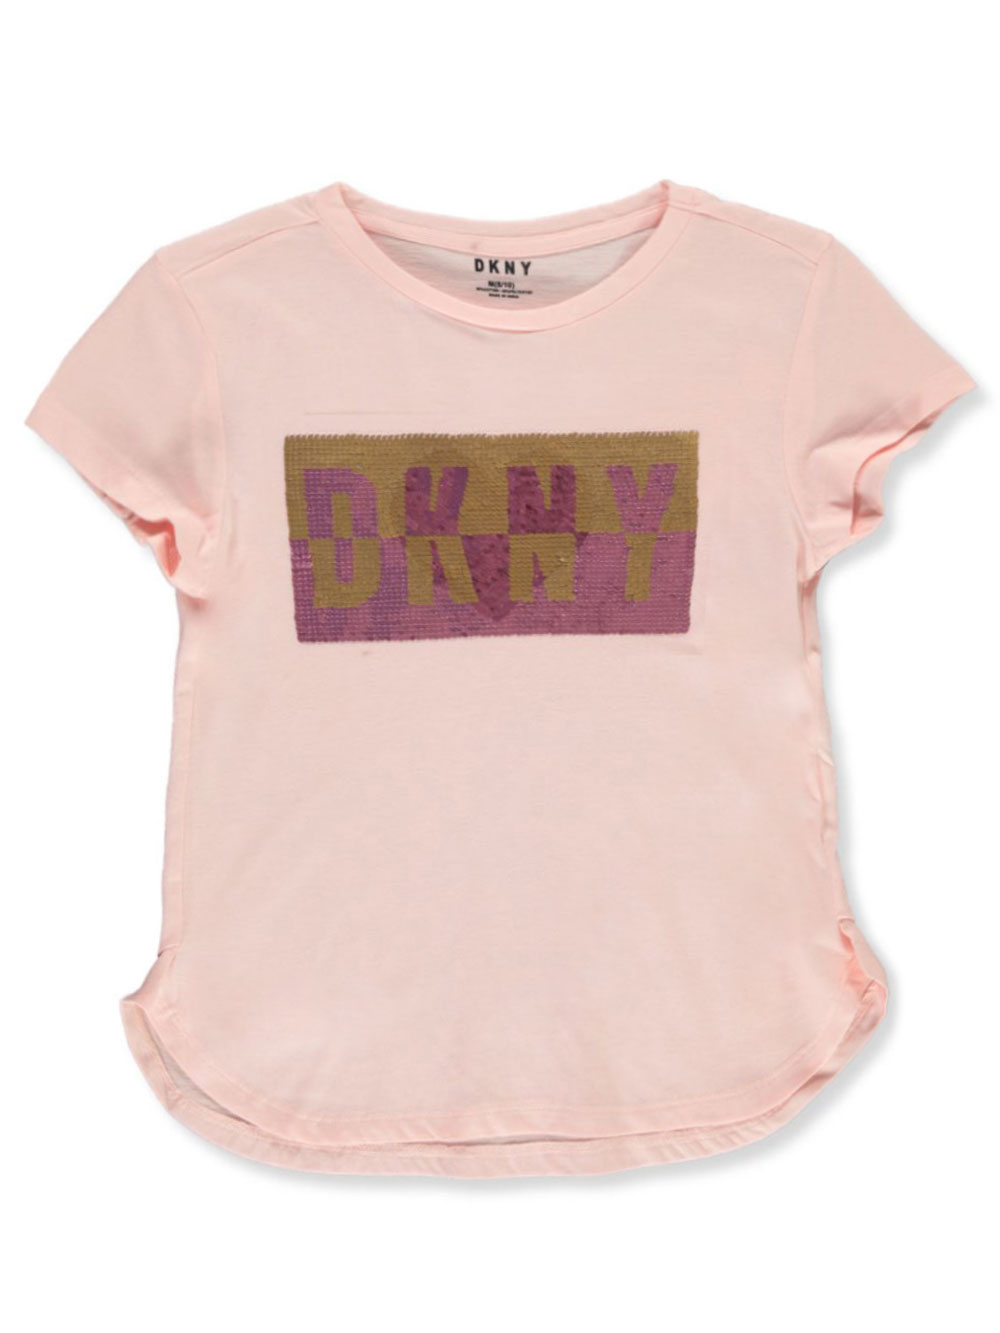 Girls Medium Heather Fashion Tops